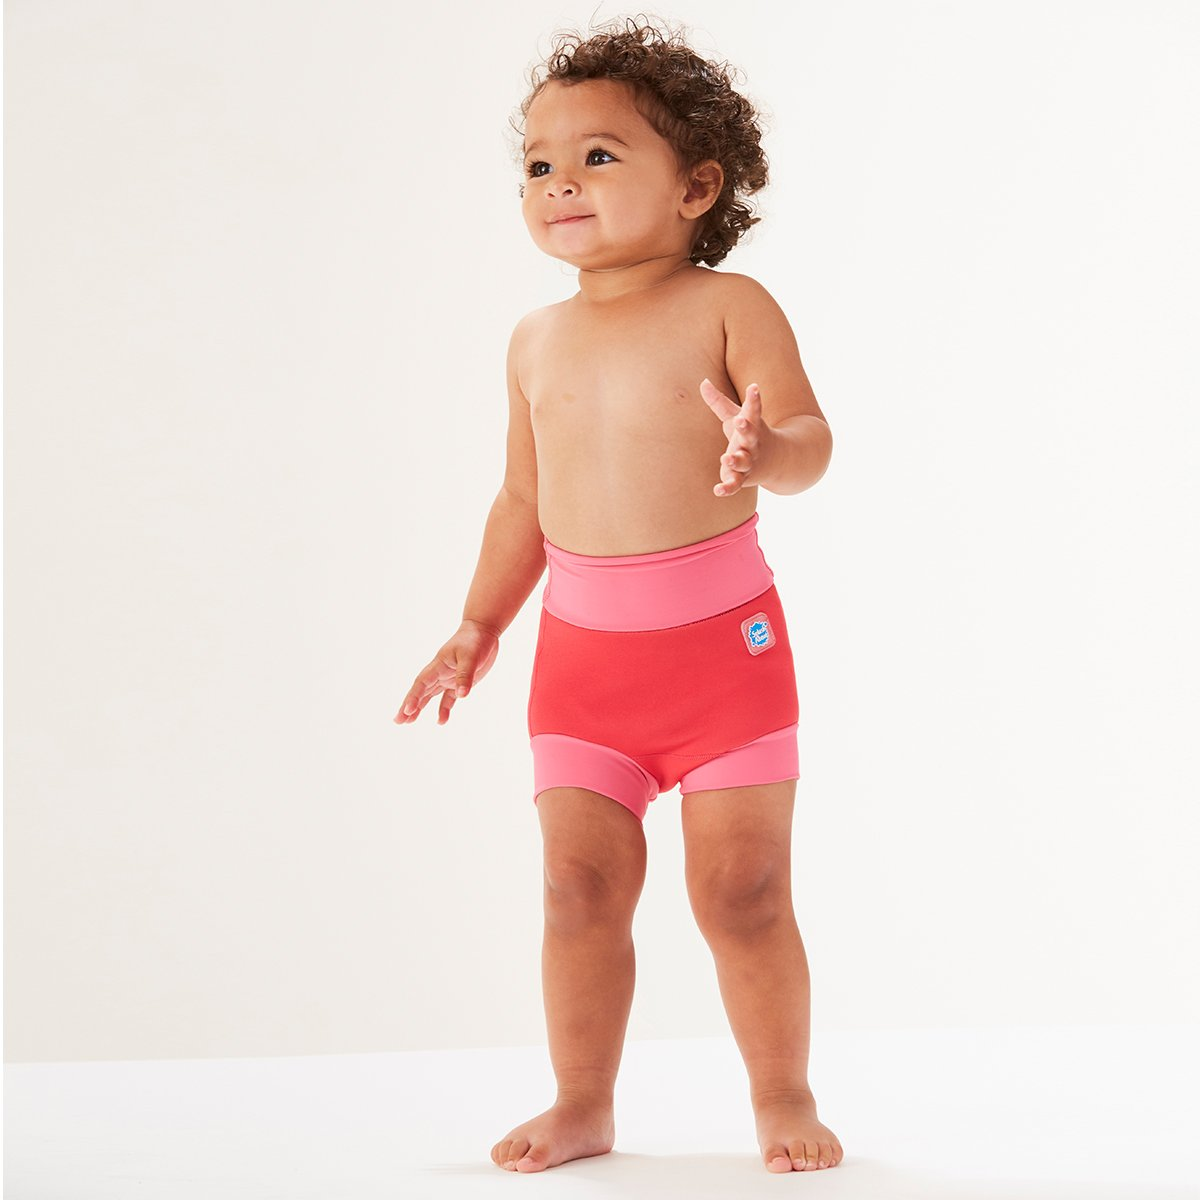 Geranium Splash About Baby Kids New Improved Happy Nappy,Pink ,3-6 Months